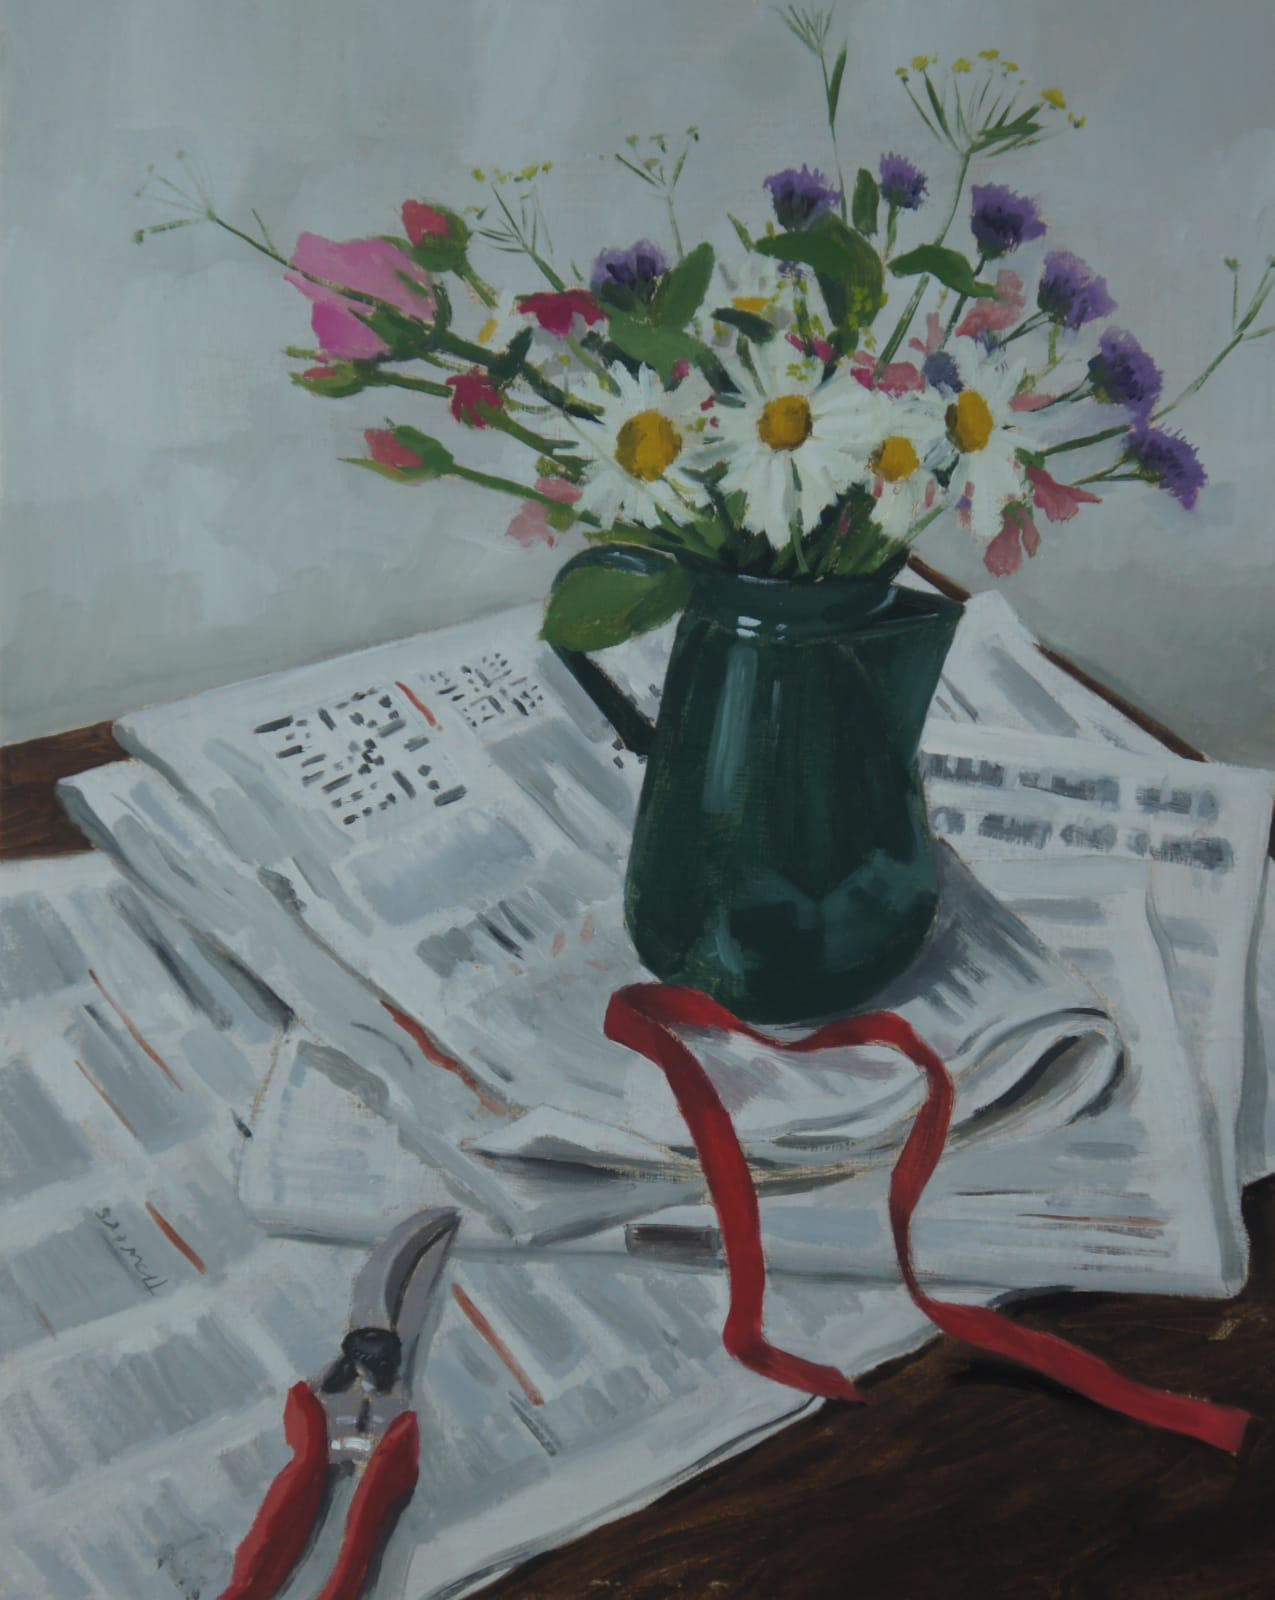 Sam Travers, Flowers in Coffee Jug, 2018